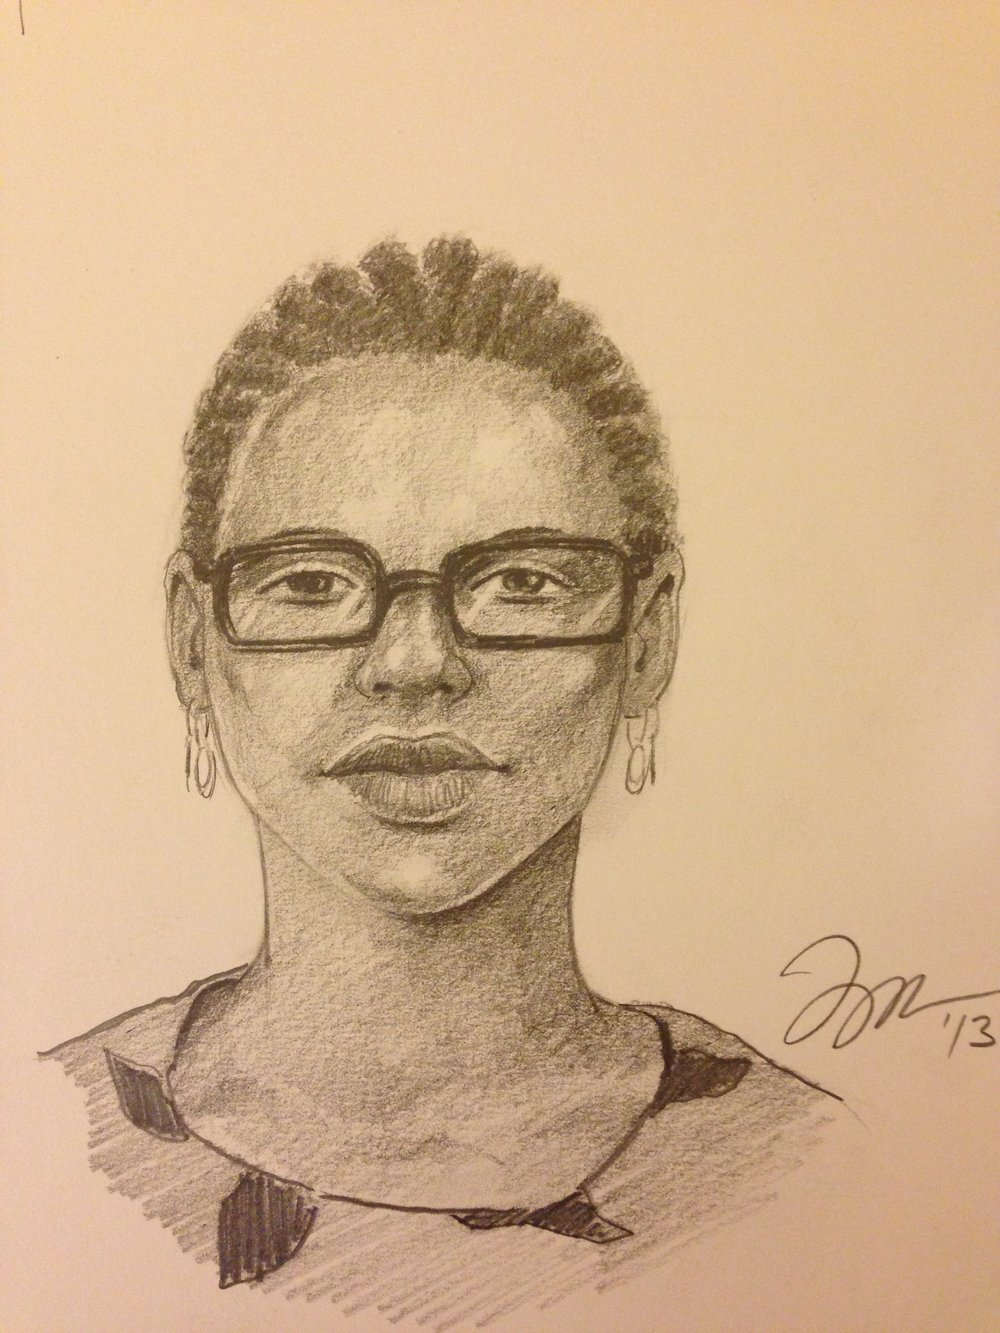 "Zamora, Gil. Perspective Sketch: Lady with glasses. 2013. Graphite on paper, 11"" x 14"". Private collection."